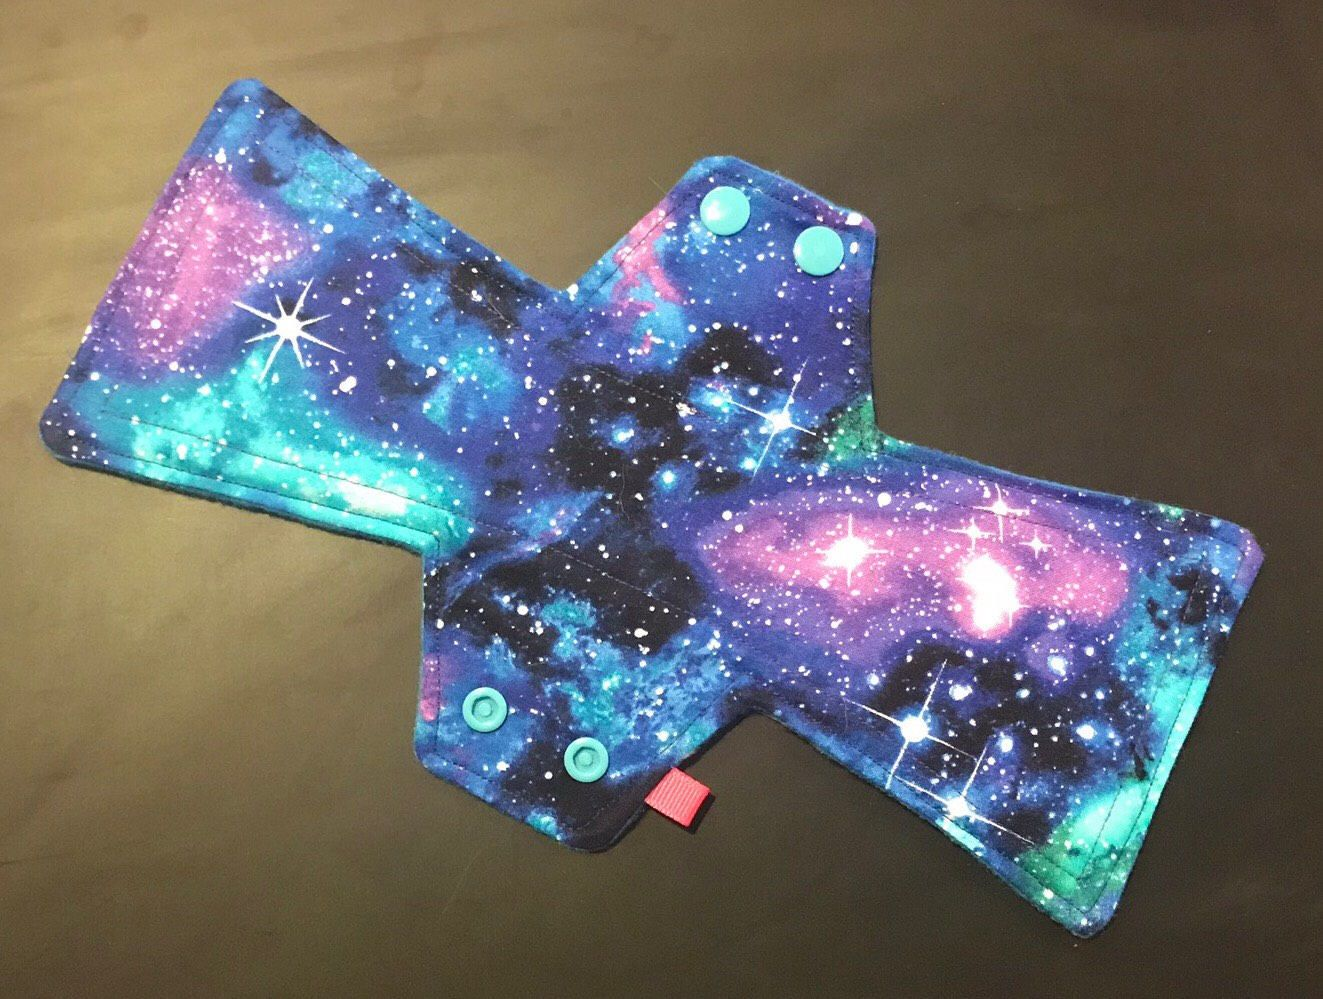 Excited to share the latest addition to my #etsy shop: 11 inch moderate flow reusable menstrual sanitary cloth pad 2.5 snap width slim pad galaxy cotton print #noveltyfabric #11inchclothpads #clothmenstrualpad #clothpads #reusableclothpad #reusablepads #clothsanitarypads